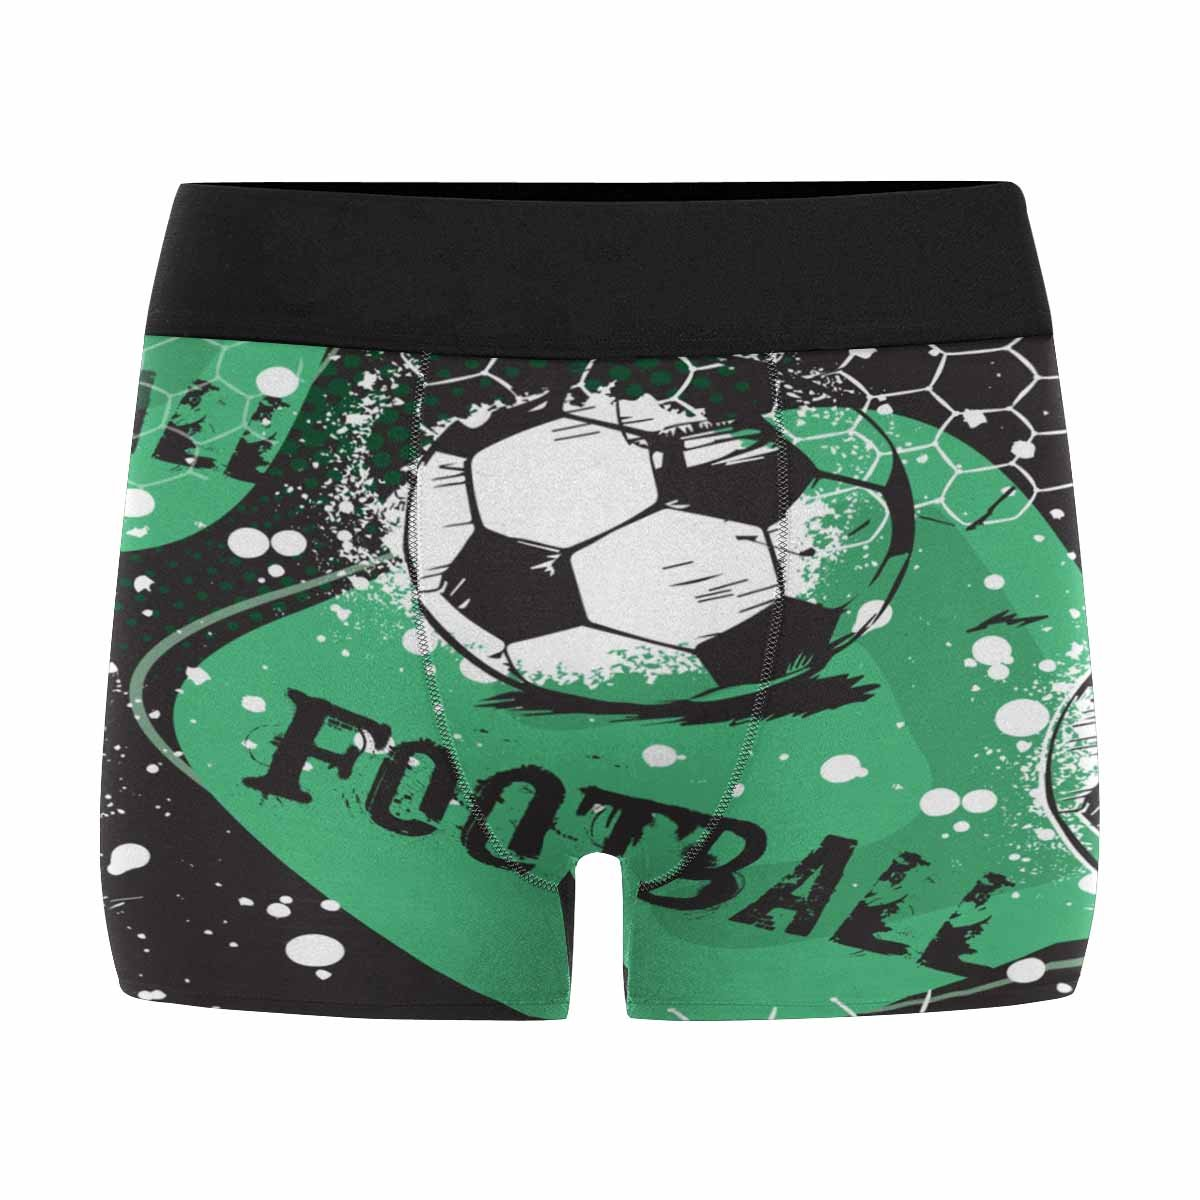 INTERESTPRINT Mens Boxer Briefs Grunge Urban with Football Ball XS-3XL